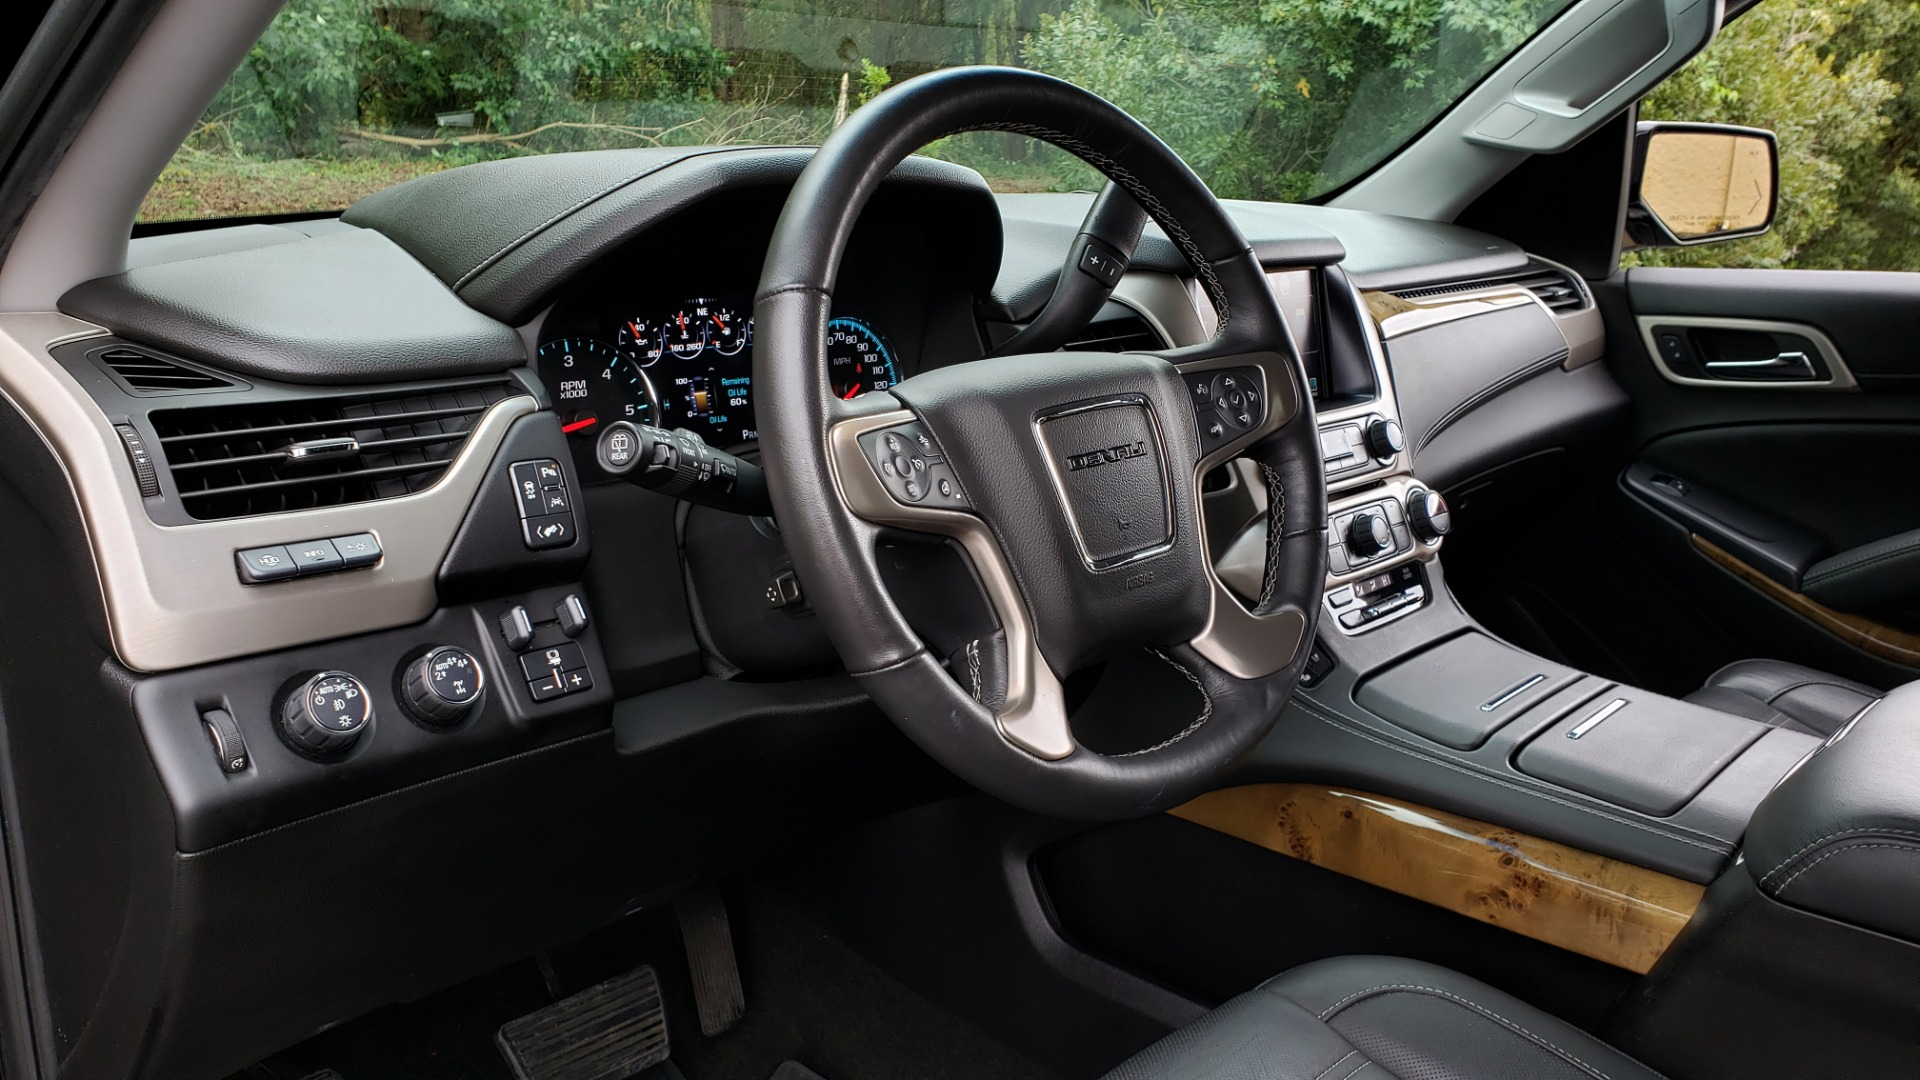 Used 2017 GMC YUKON XL DENALI 4WD / NAV / SUNROOF / ENT / 3-ROWS / BOSE / REARVIEW for sale Sold at Formula Imports in Charlotte NC 28227 40